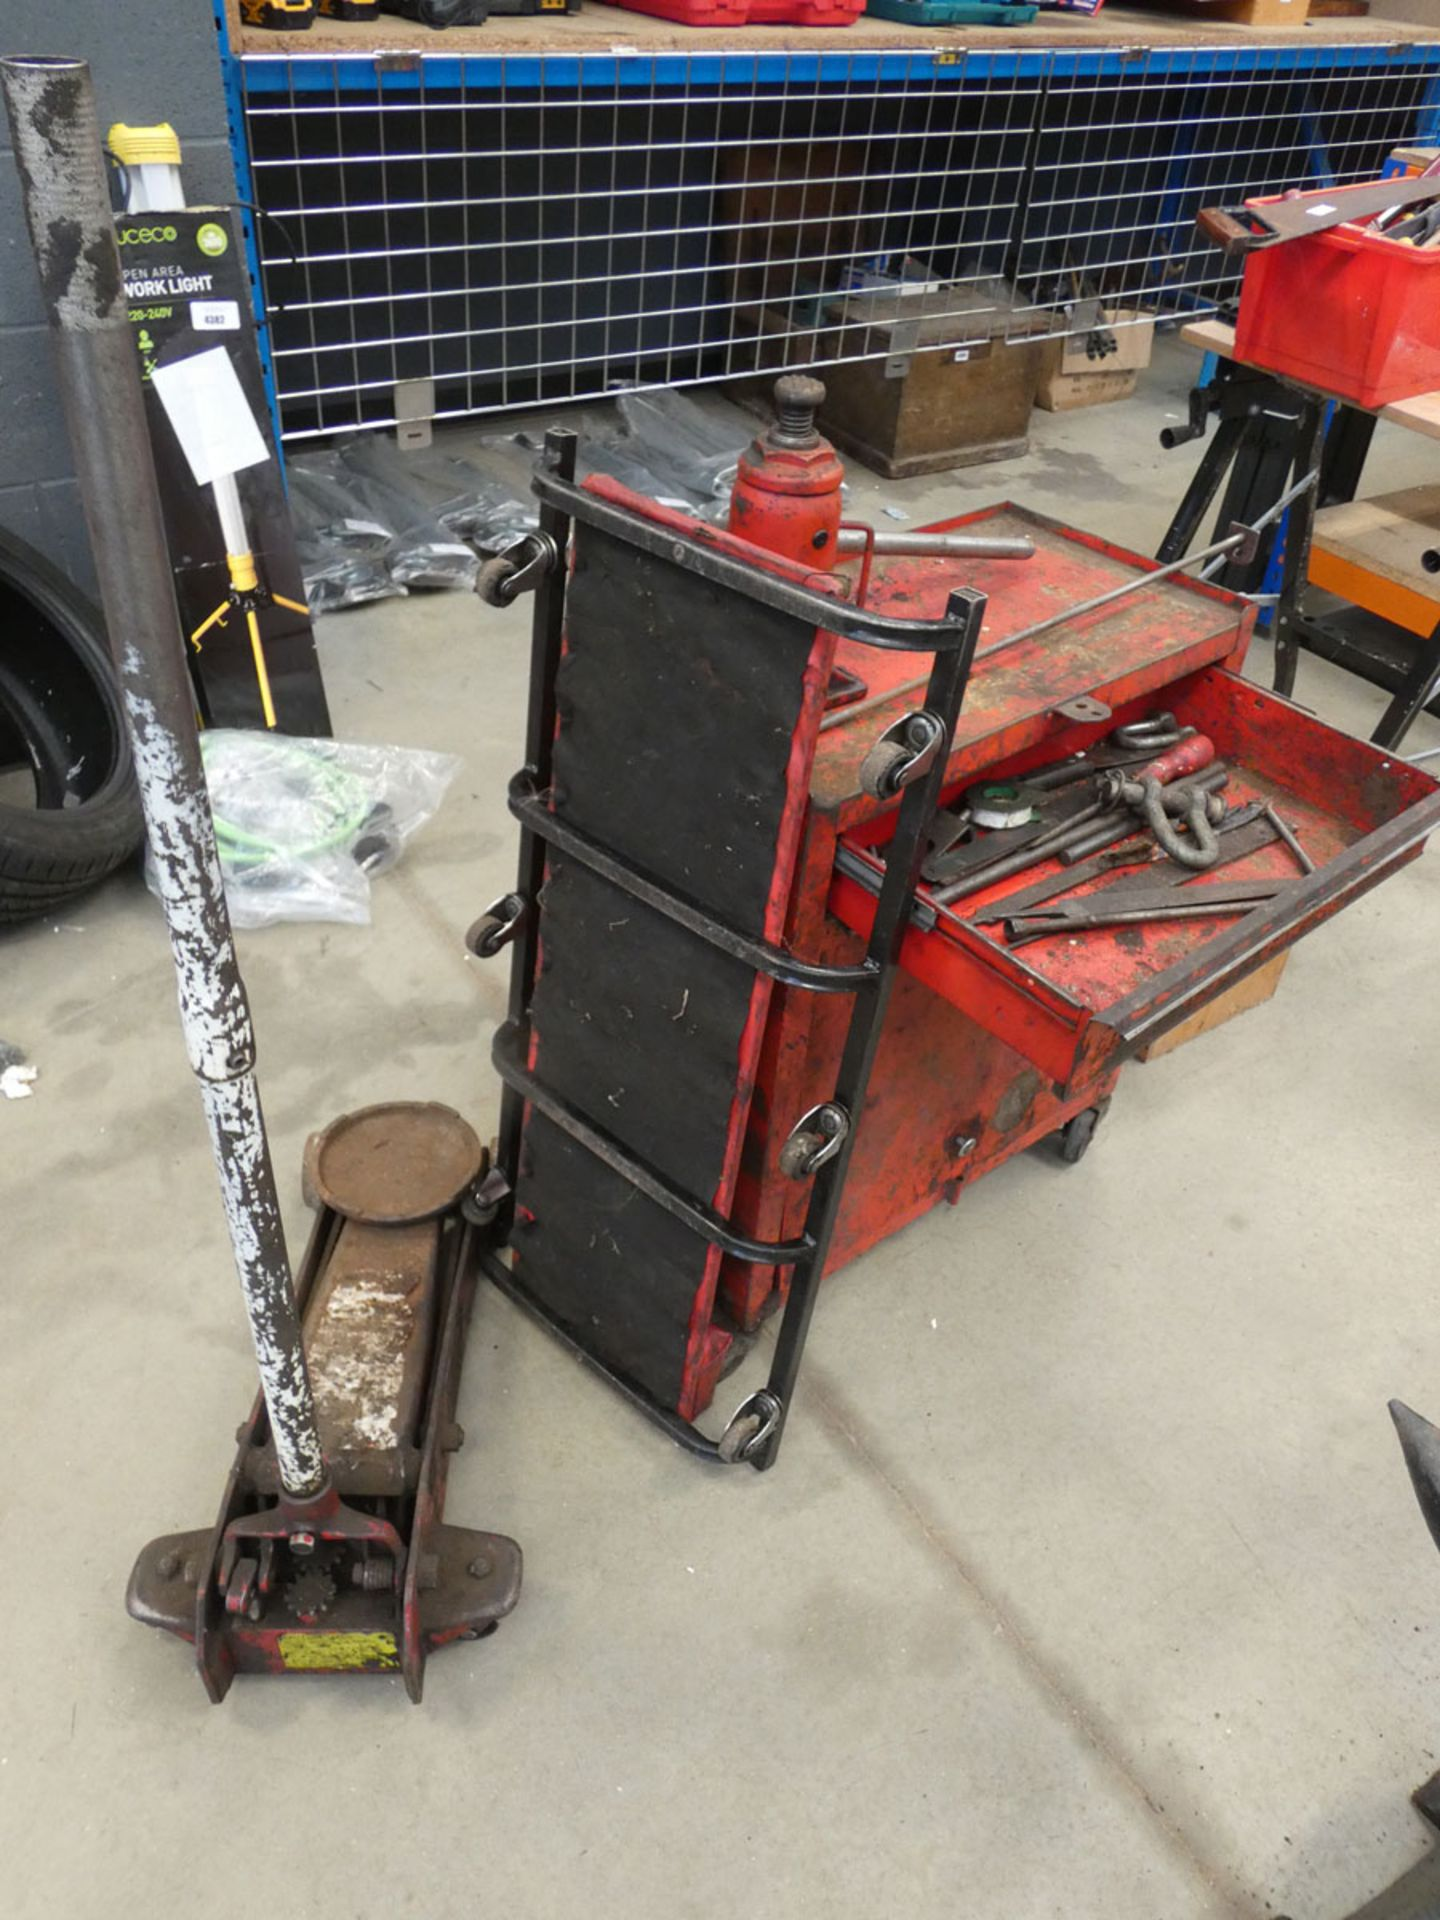 Red 4 wheeled toolbox, bottle jack, trolley jack and a mechanics creeper board